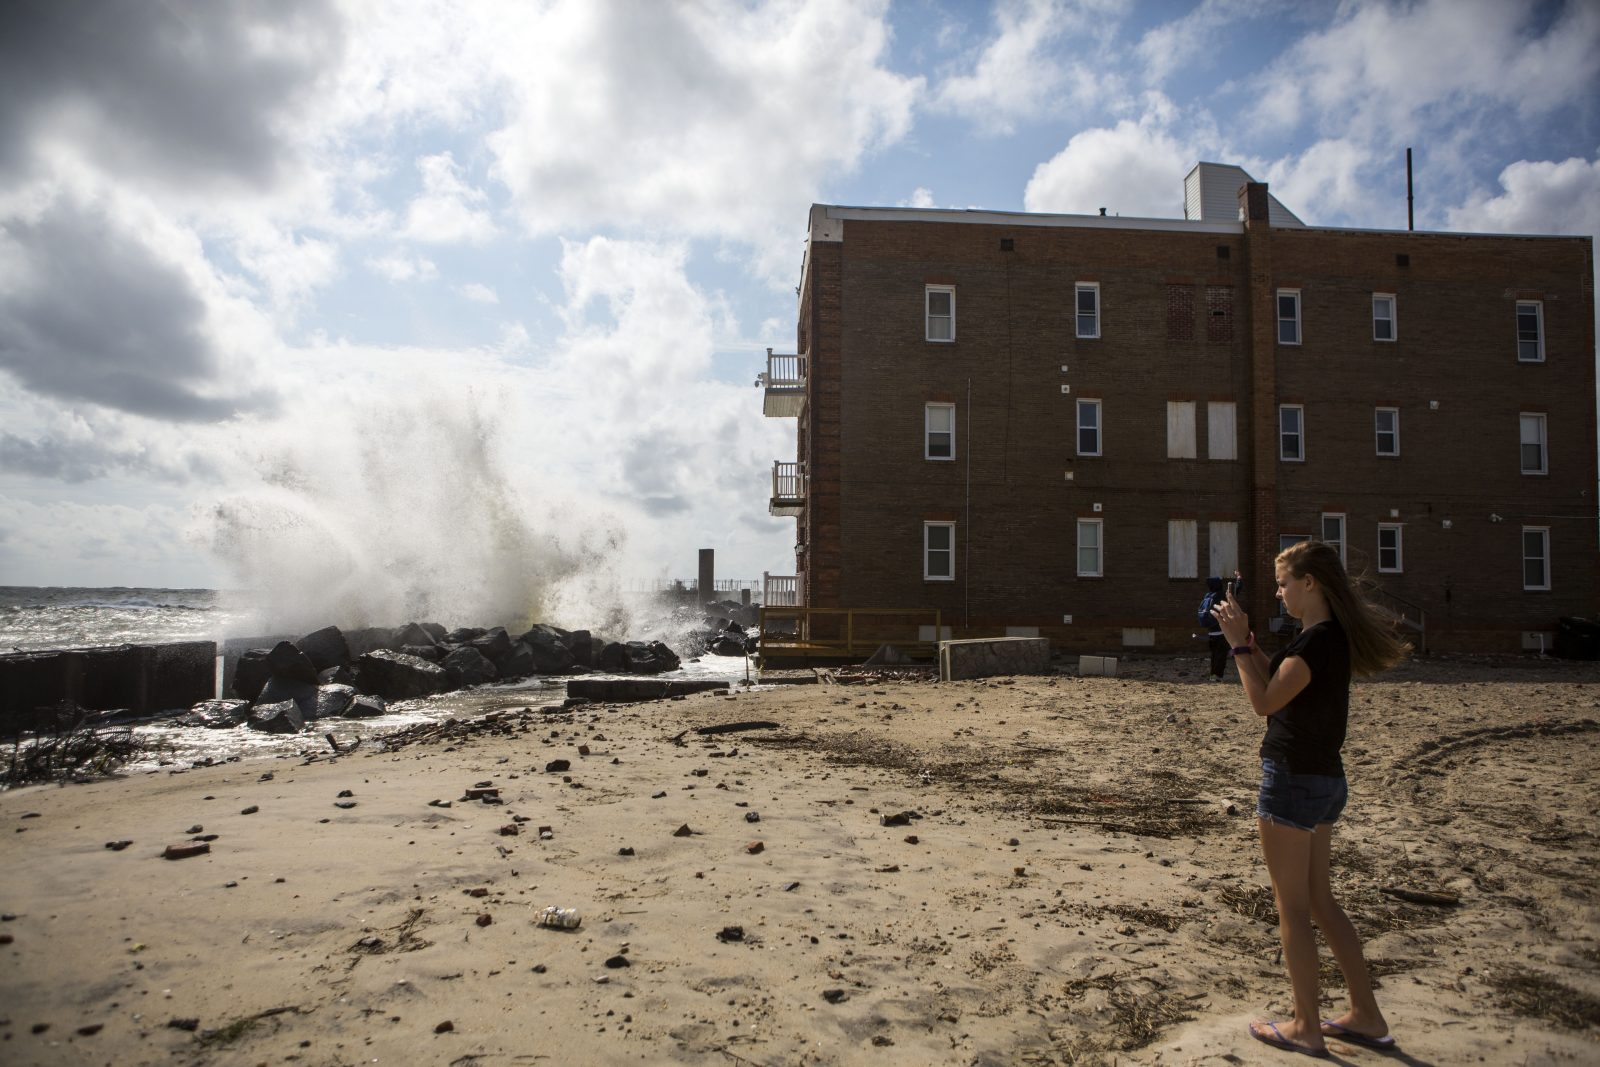 High winds from tropical storm Hermine drive waves onto the shore Atlantic City, N.J., on Sept. 4. (Jessica Kourkounis/Getty Images)